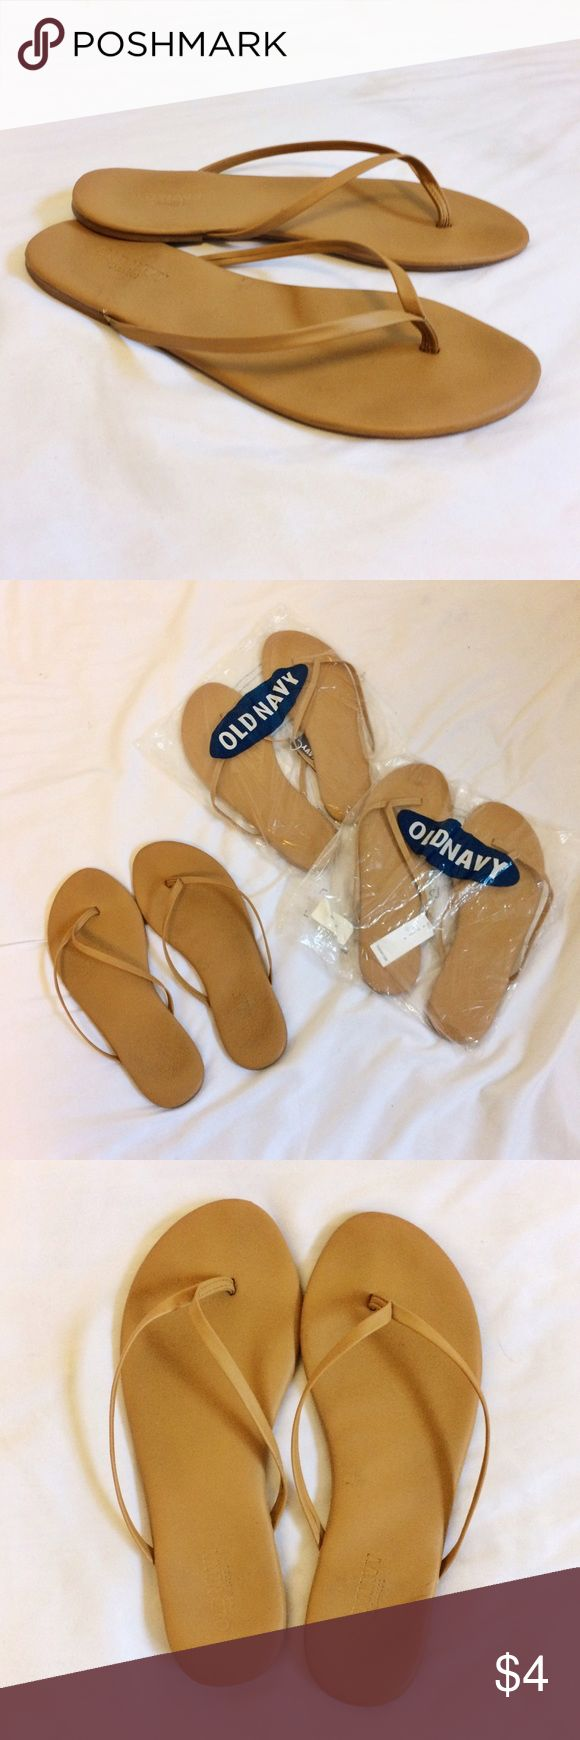 Old navy neutral flip flops Old navy flip flops, never worn and still in packaging! (Used the pair I do wear to take photos) super comfy, don't hurt my feet when walking. Good neutral color goes with anything. Runs a tad large. Old Navy Shoes Sandals